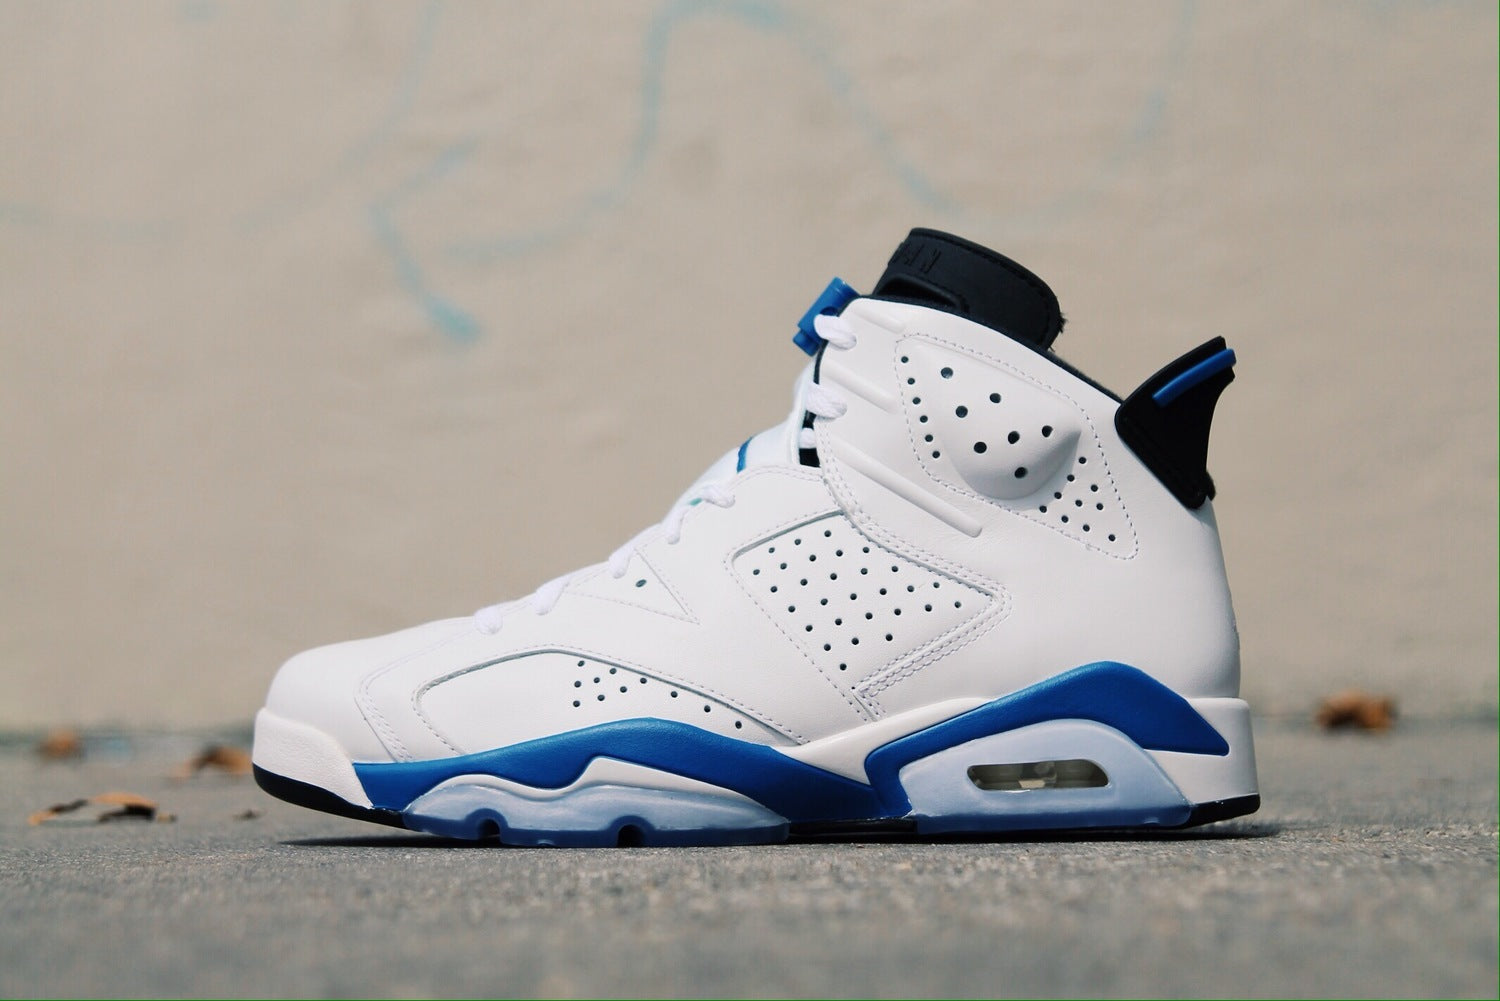 buy popular ae64e d53e7 RELEASE REMINDER: NIKE AIR JORDAN 6 RETRO -